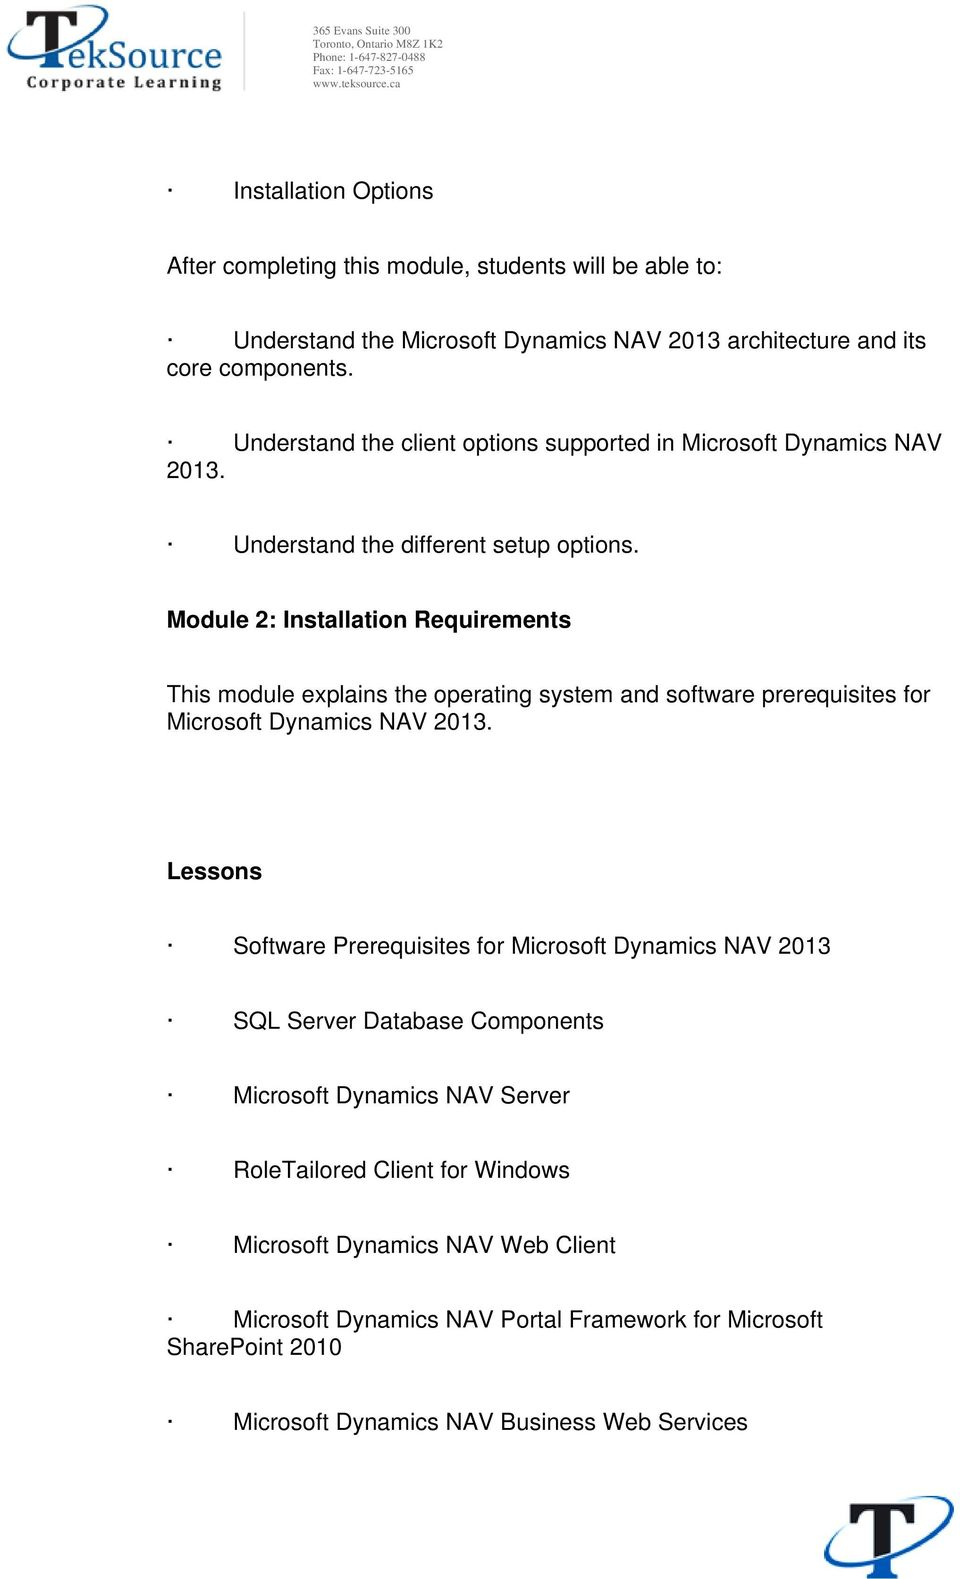 Module 2: Installation Requirements This module explains the operating system and software prerequisites for Microsoft Dynamics NAV 2013.